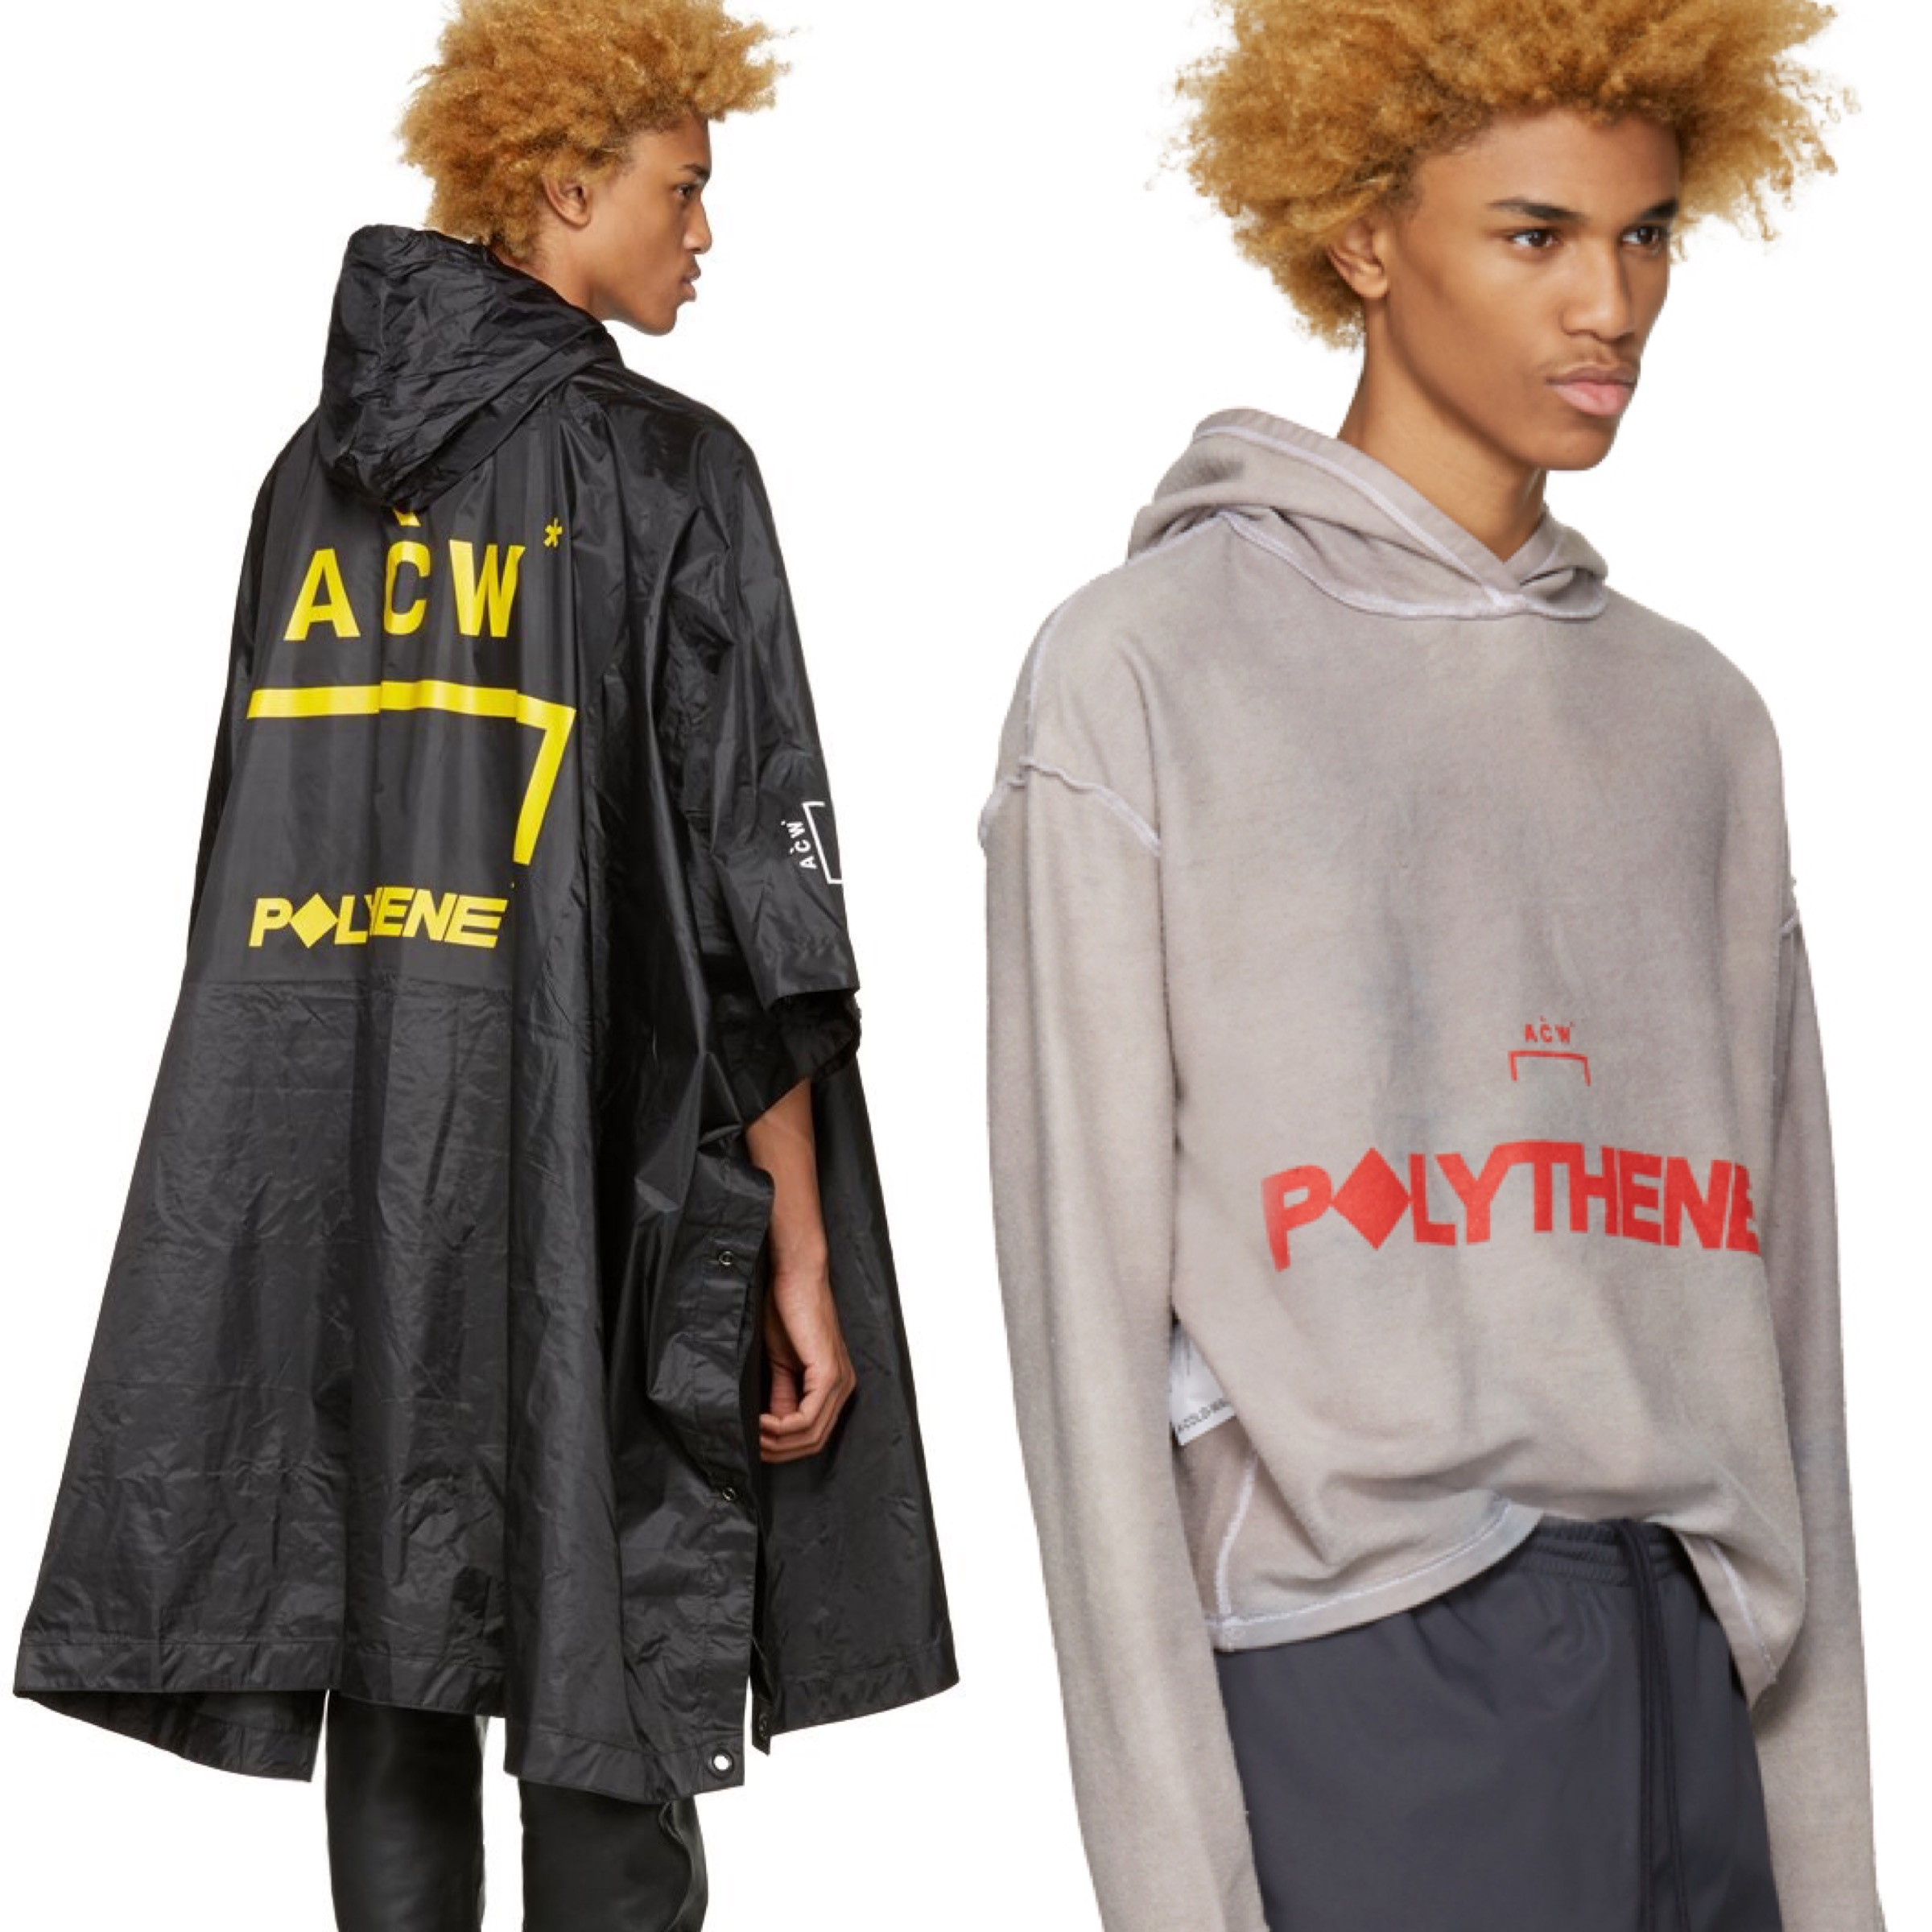 SSENSE Releases A-Cold-Wall* Fall/Winter 2016 Collection